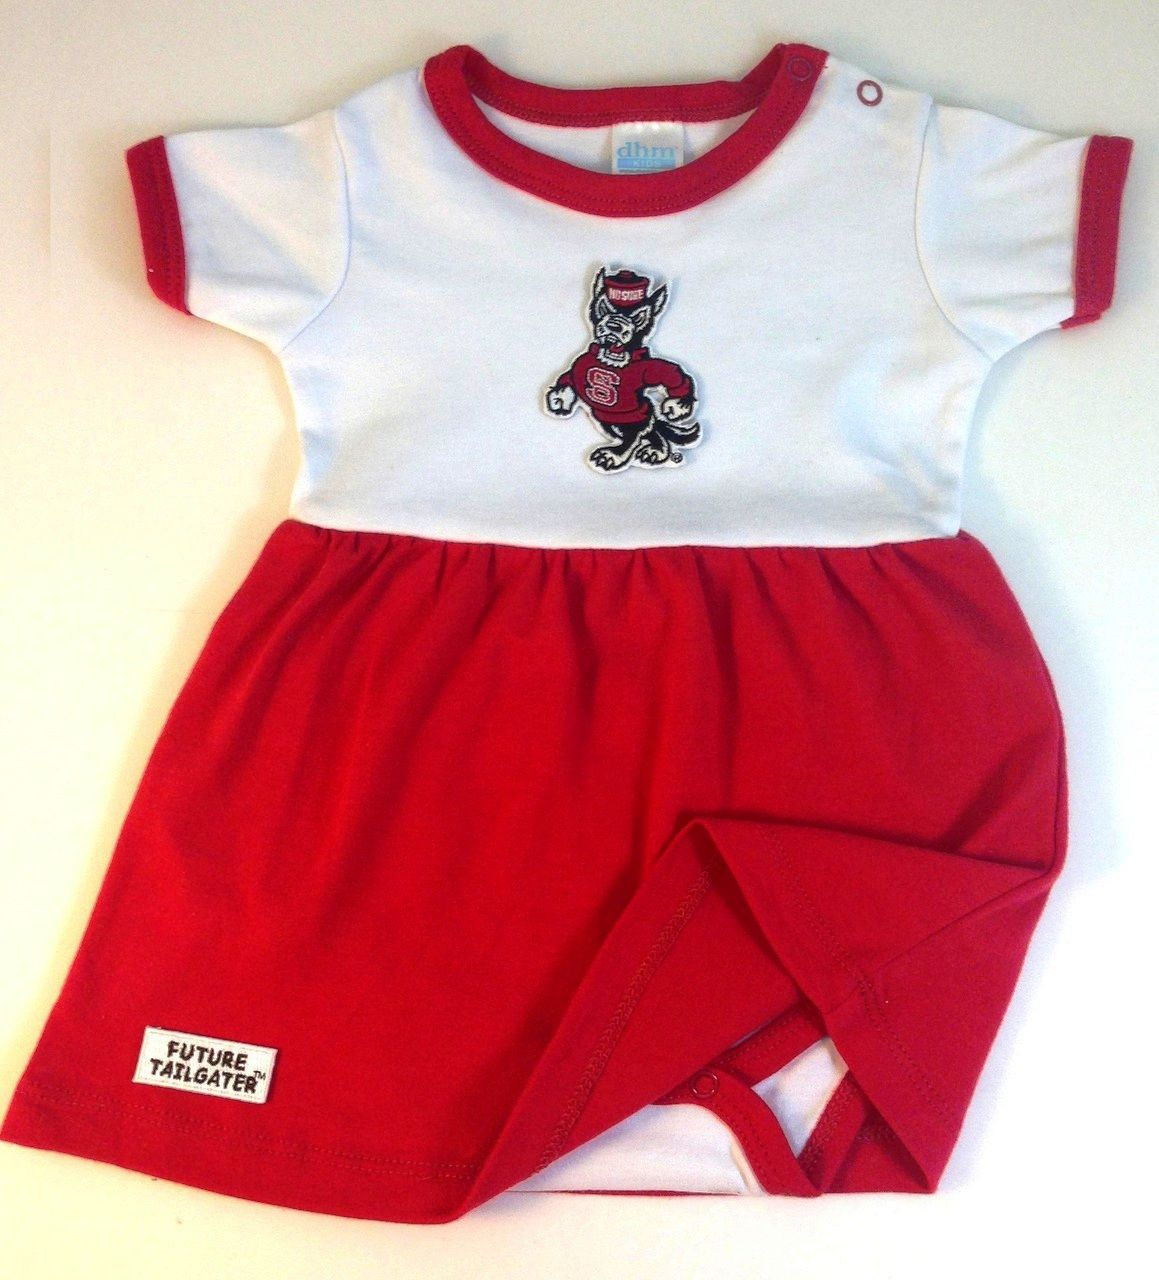 0588fa3f5 Dress to Impress - NC State Wolfpack Future Tailgater Dress by DHM Kids,  $21.99